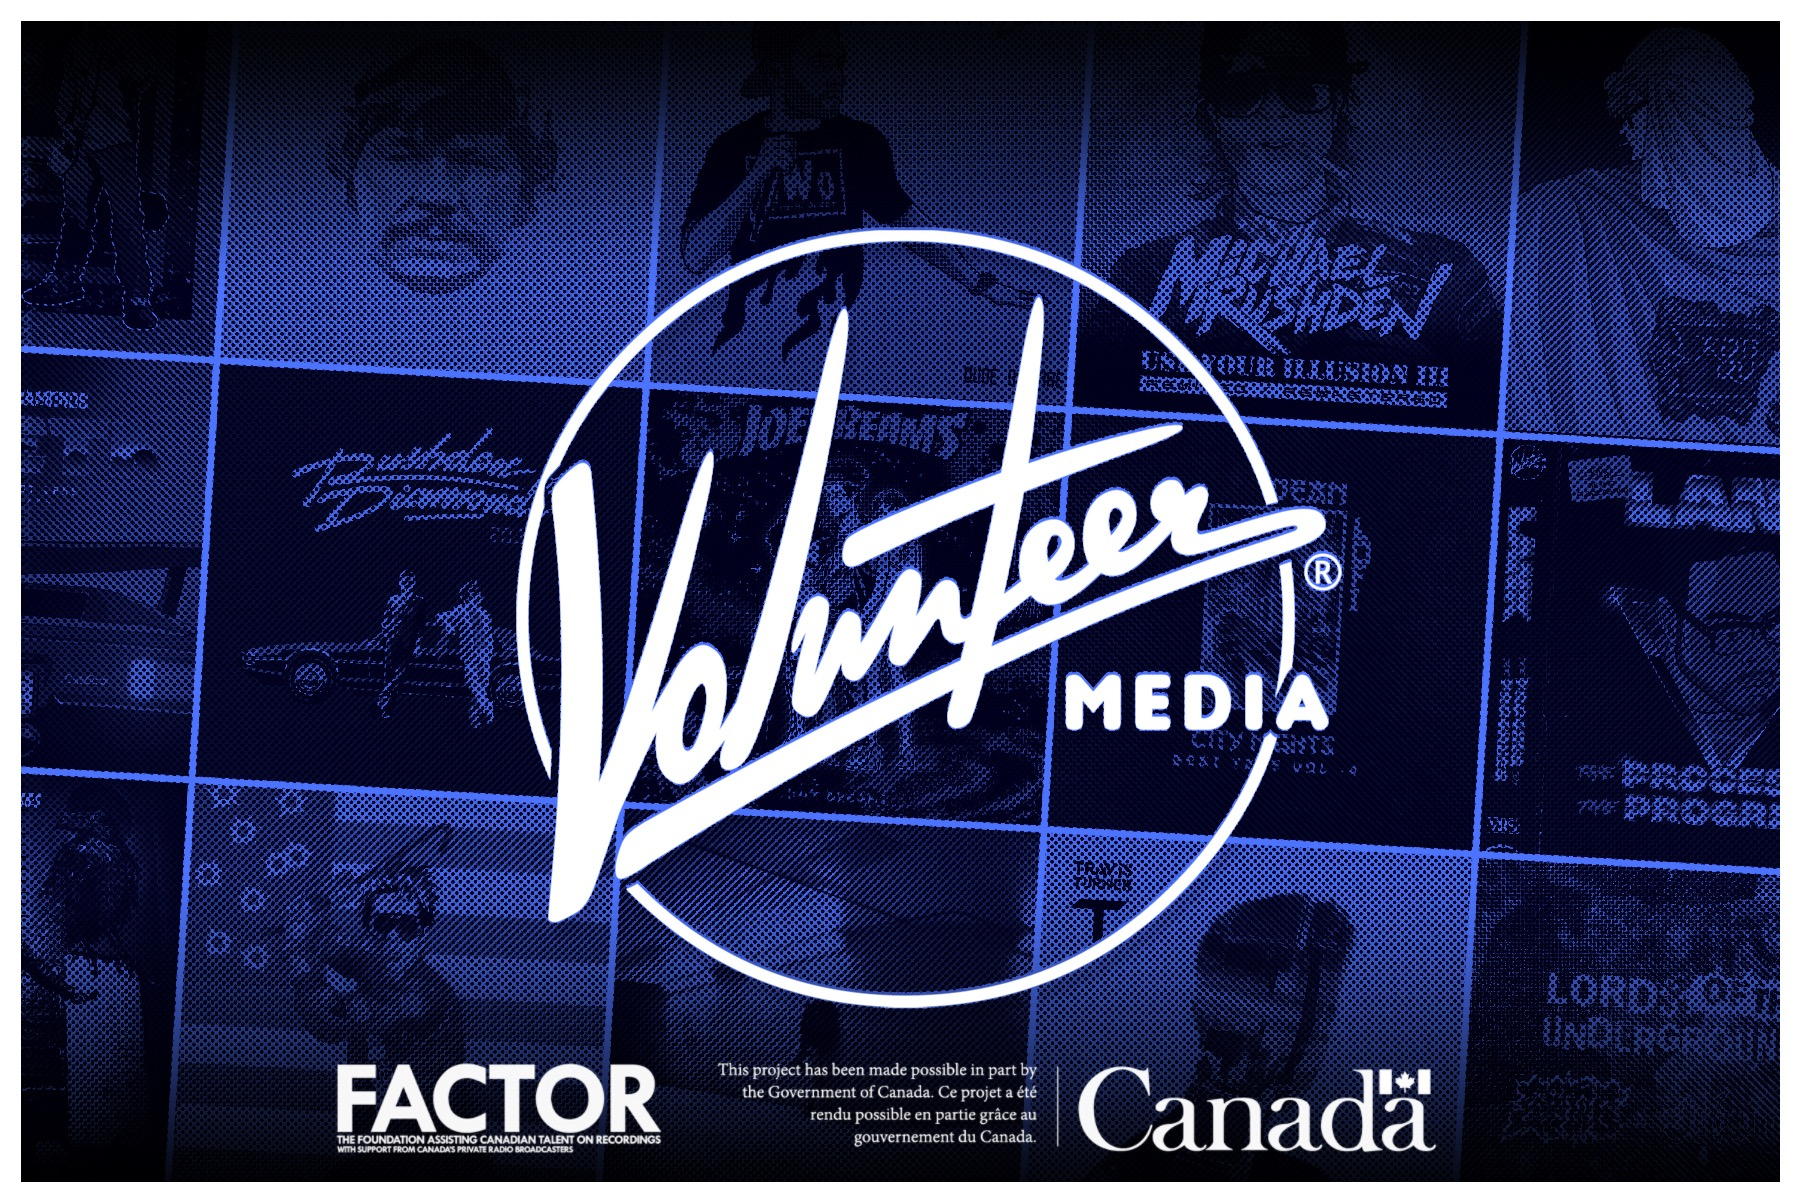 VOLUNTEER MEDIA Announces New Campaign Management / Marketing Strategy Division 8